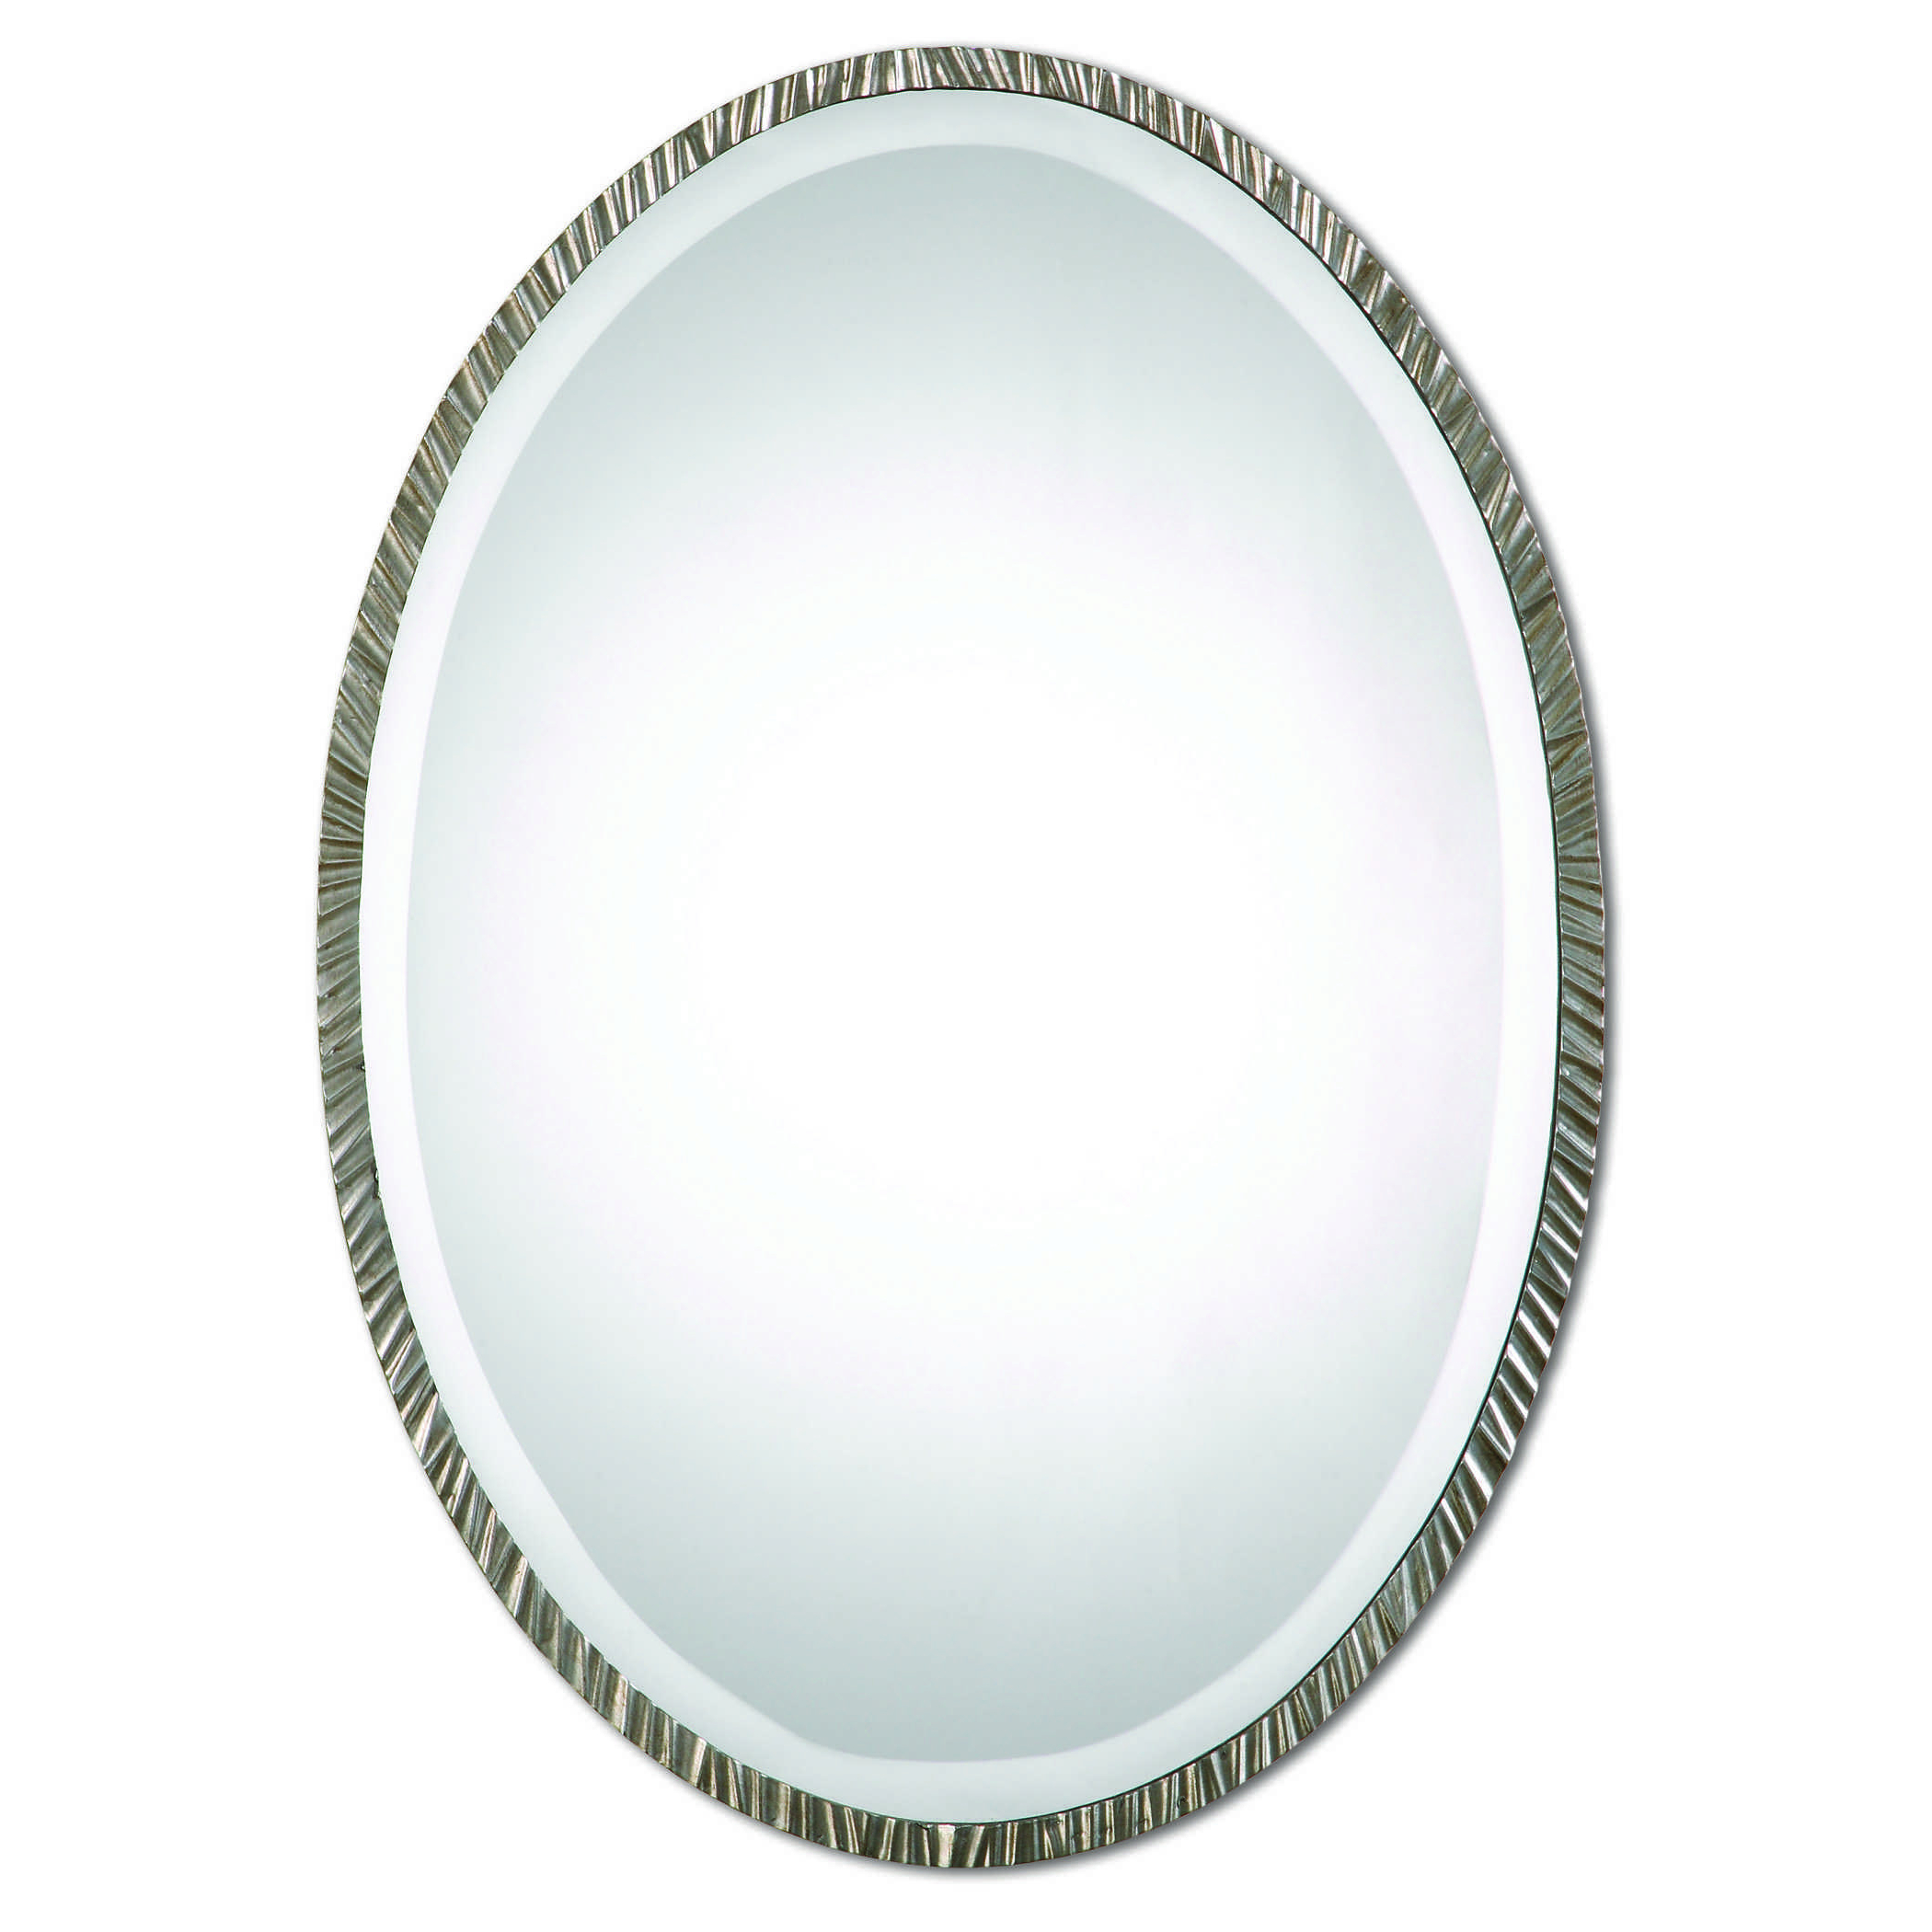 Uttermost Annadel Oval Wall Mirror Intended For Recent Burnes Oval Traditional Wall Mirrors (View 17 of 20)